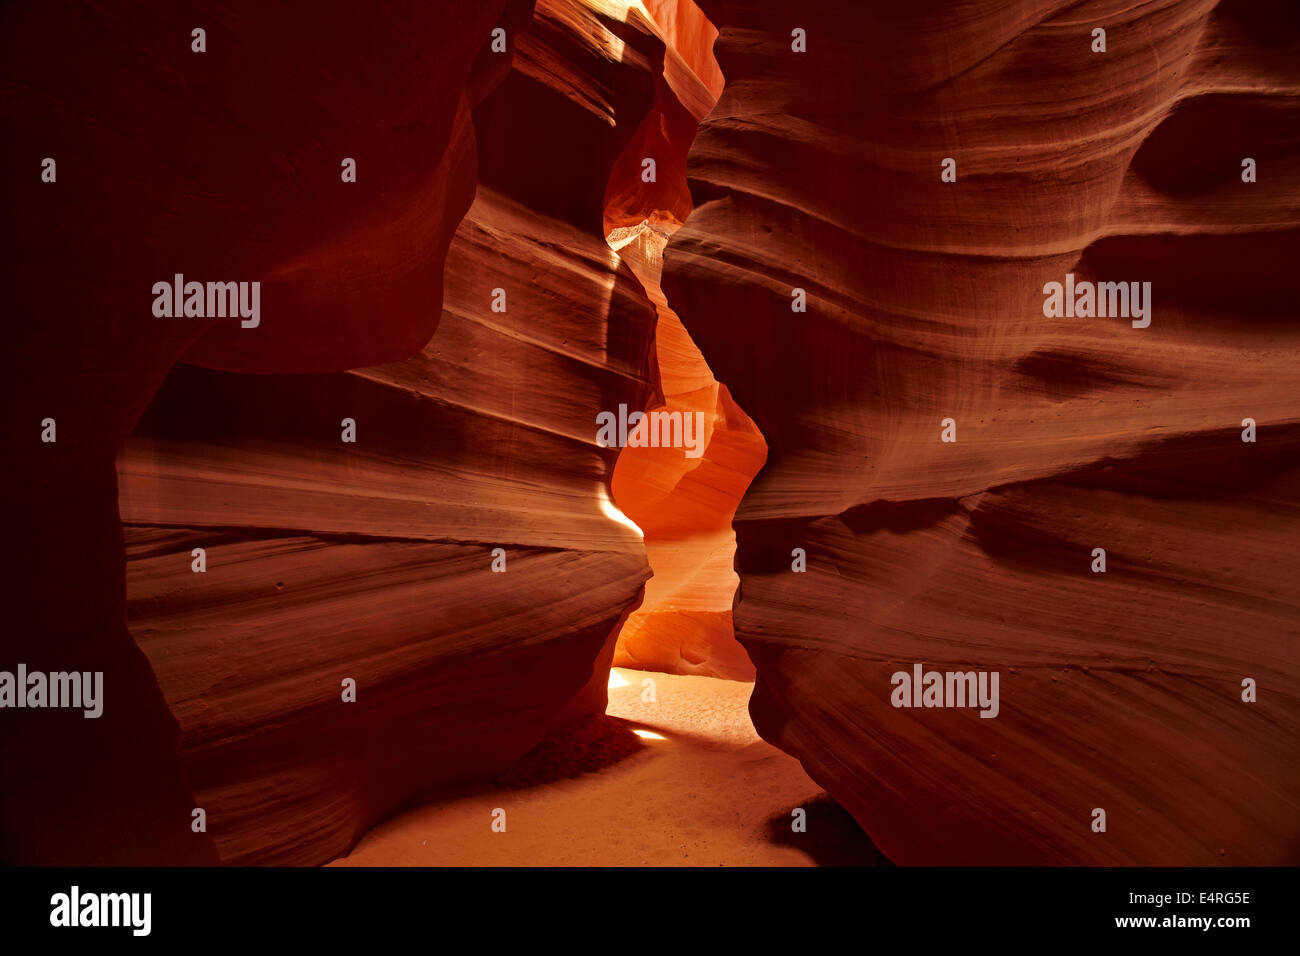 Eroded sandstone formations in Upper Antelope Canyon, near Page, Navajo Nation, Arizona, USA Stock Photo